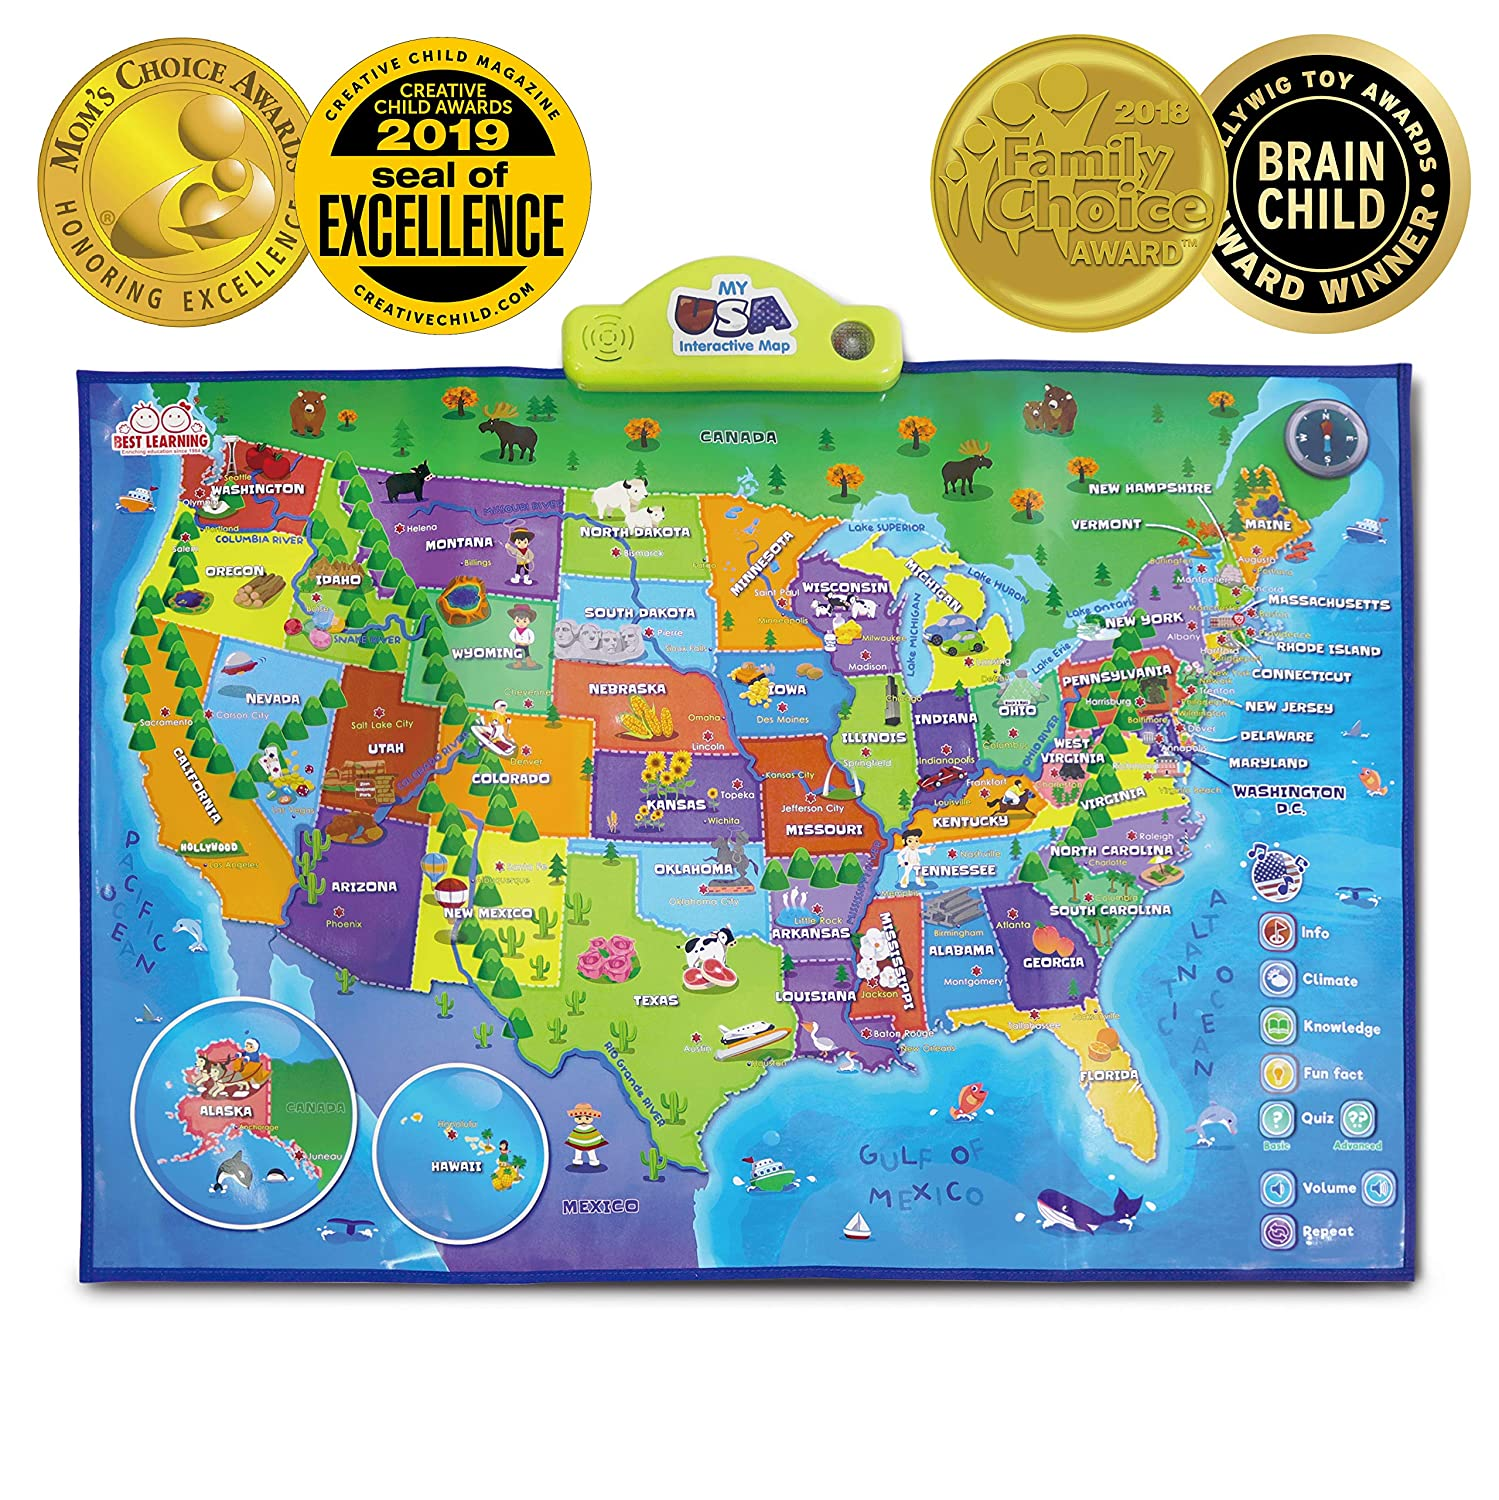 Map Of Georgia For Kids.Best Learning I Poster My Usa Interactive Map Educational Talking Toy For Boys And Girls Ages 5 To 12 Years Old Ideal Gift For Kids